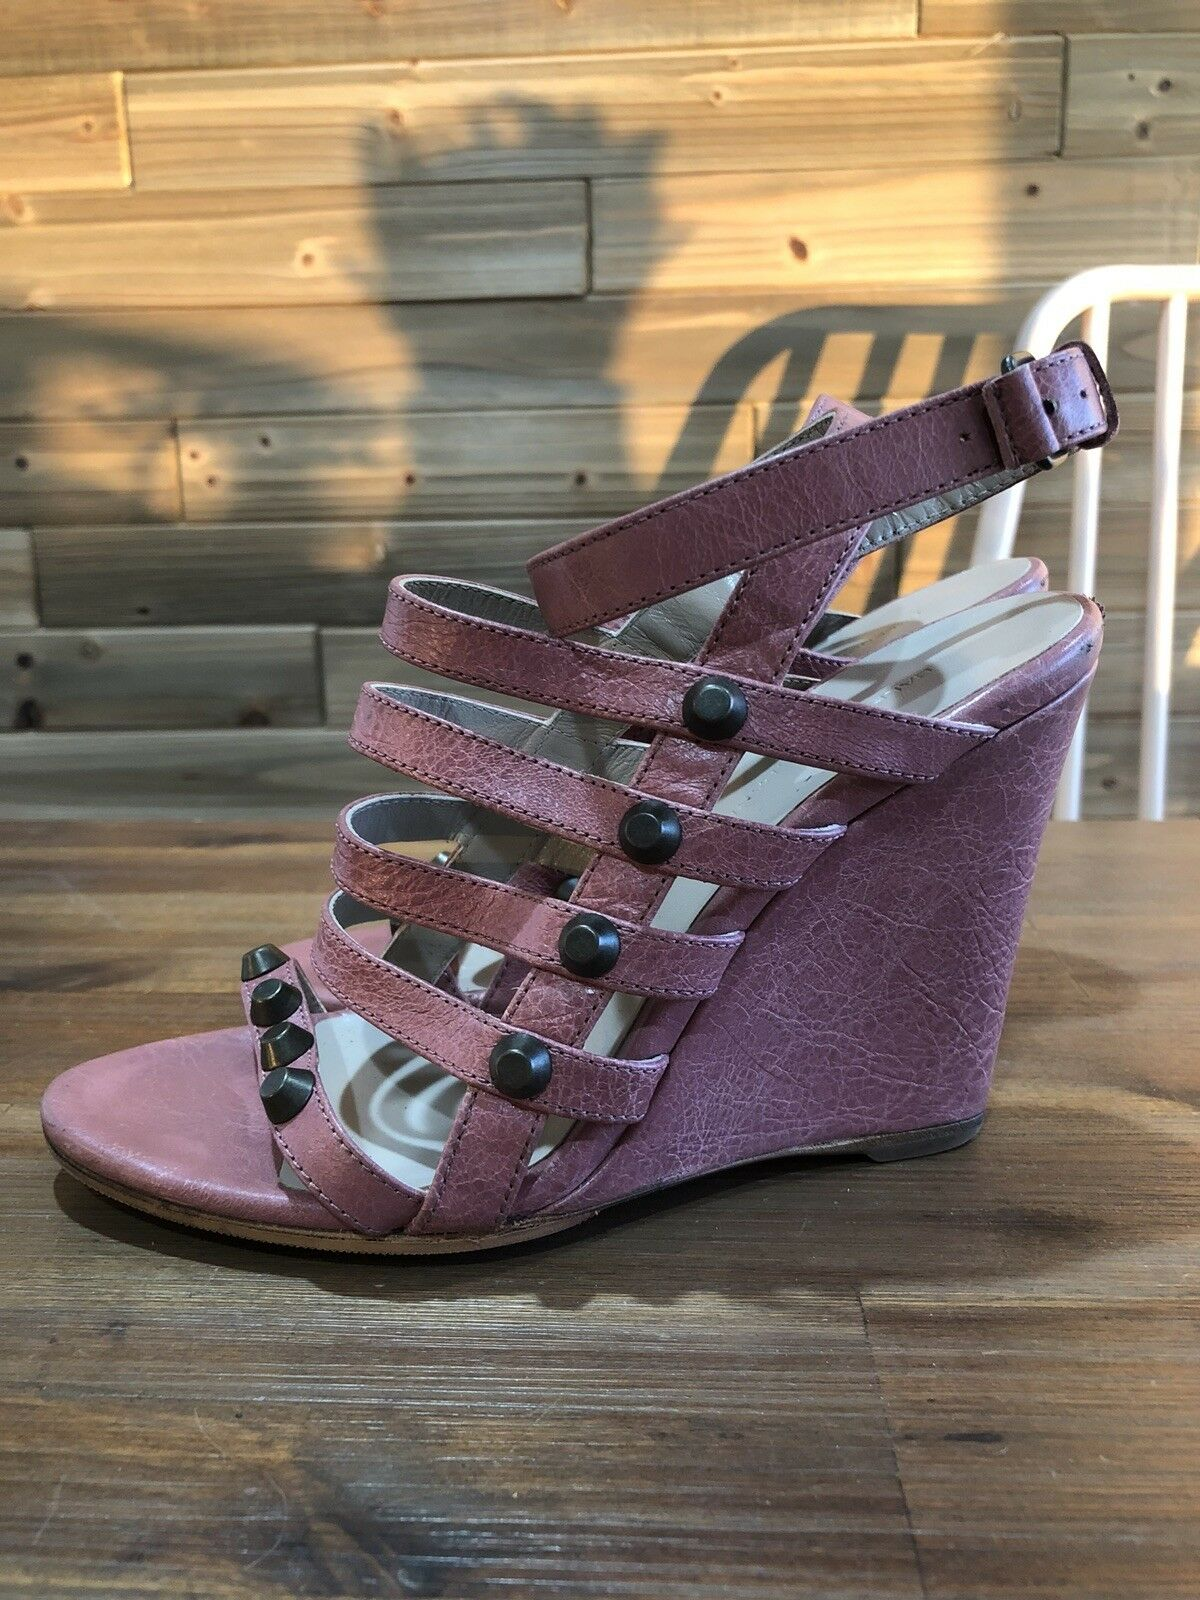 Authentic Balenciaga Wedges Heels Sandals with Studs Details Ankle Wrap 37